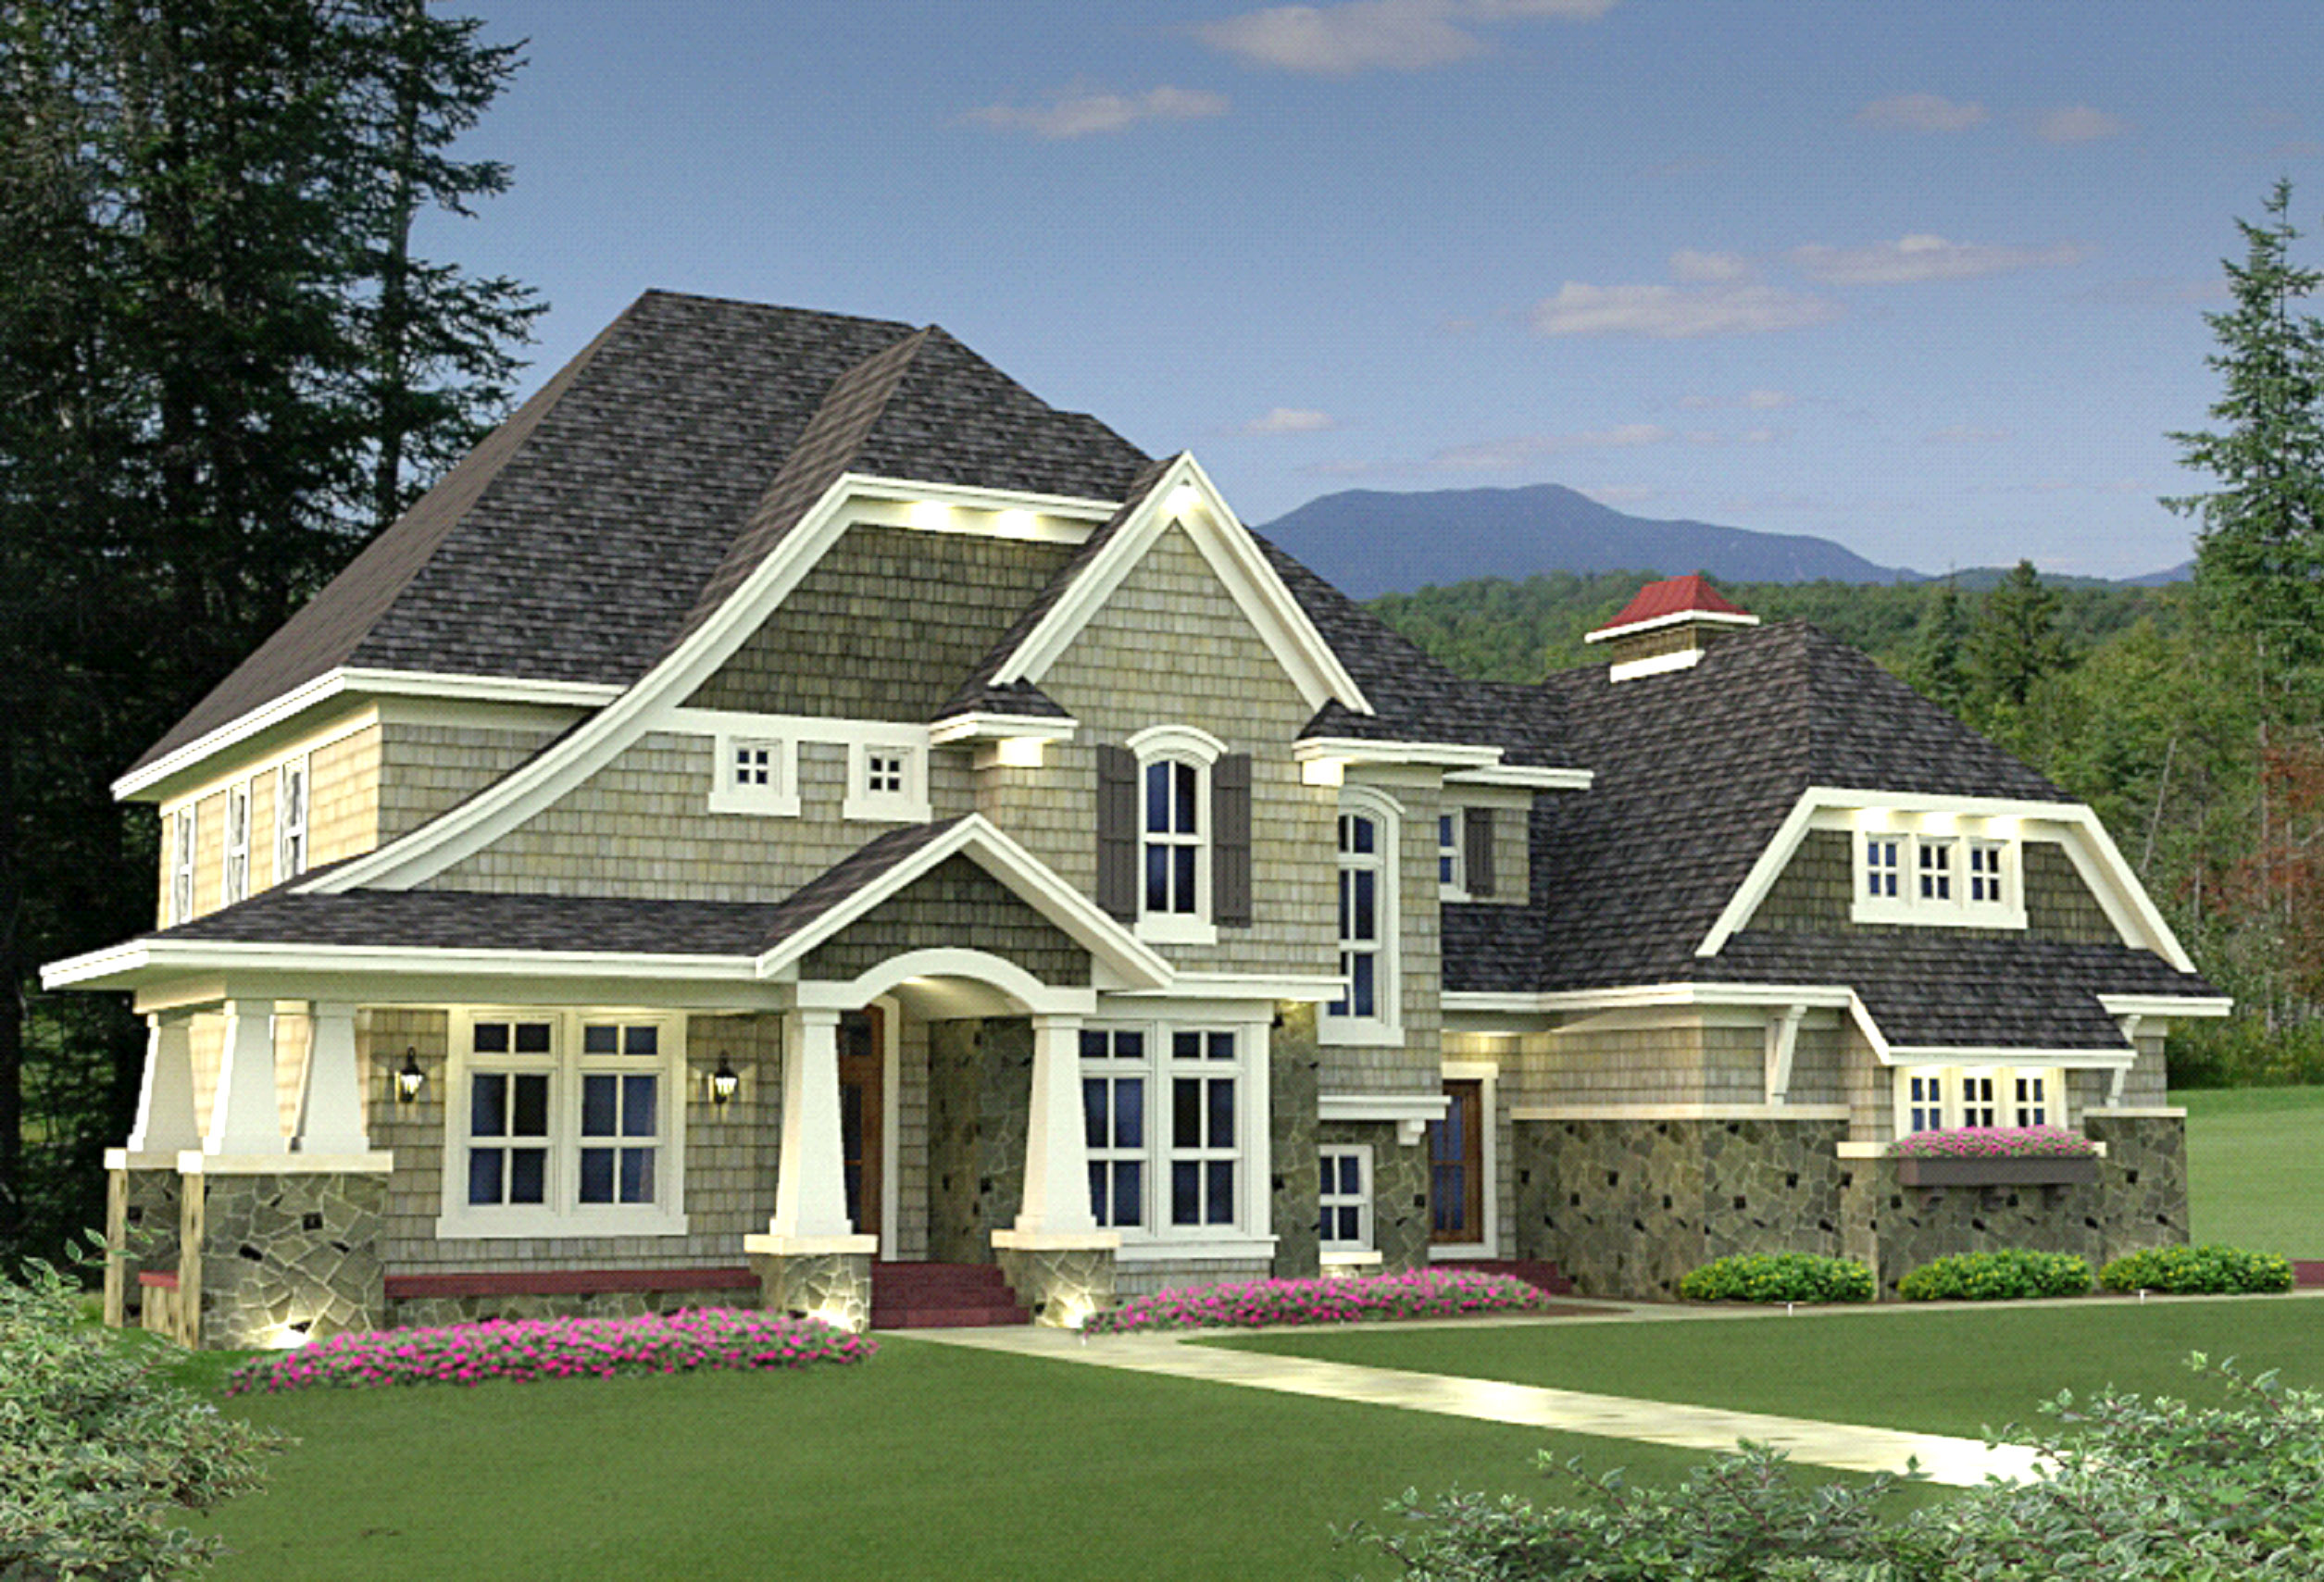 4 Bedroom Shingle Style Stunner - 14589rk Architectural